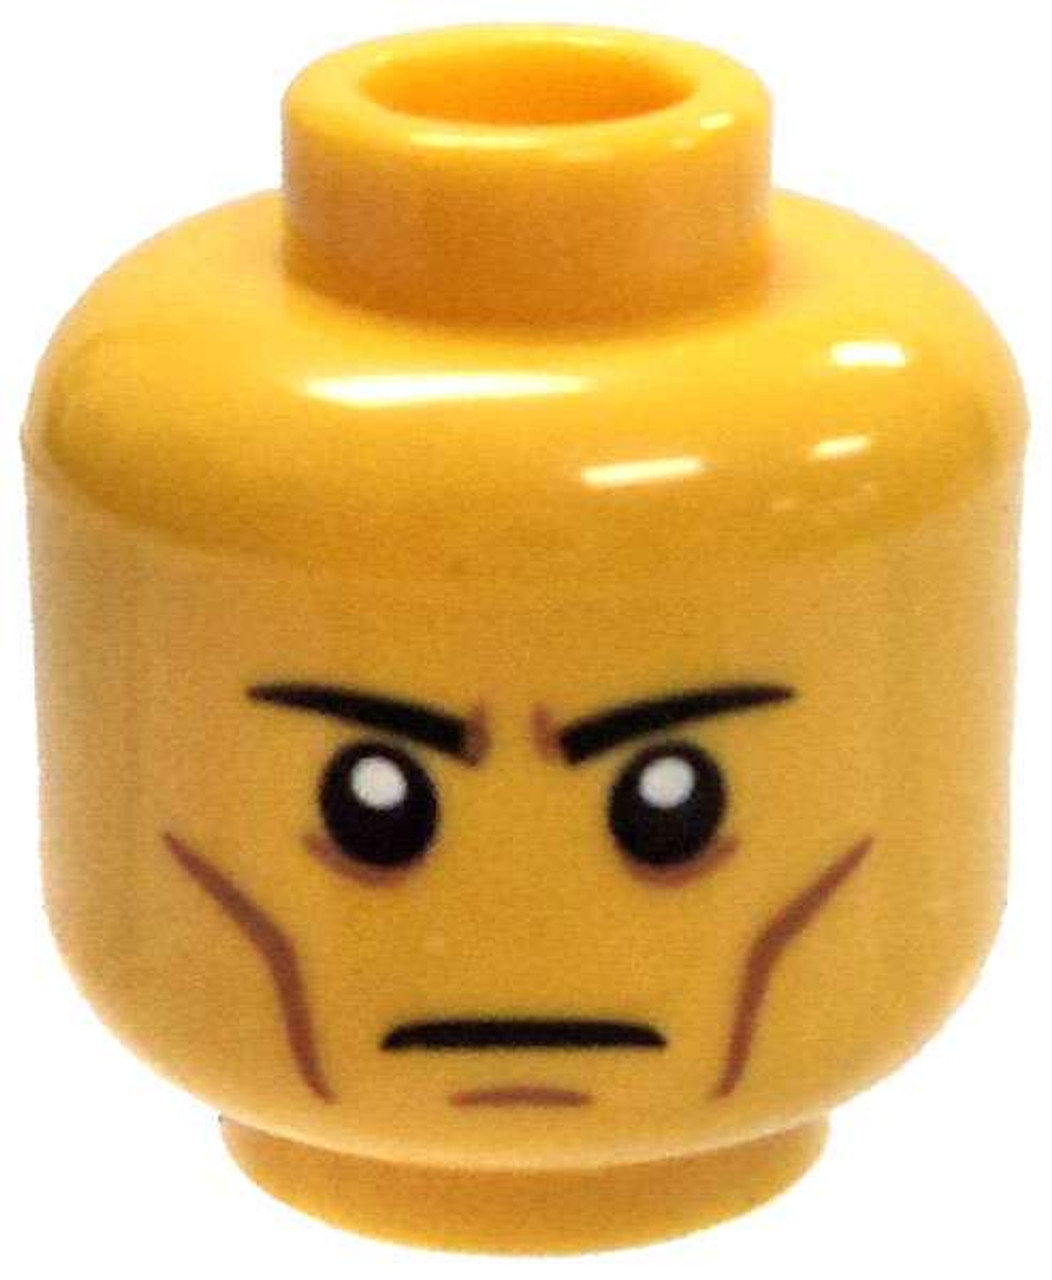 Lego Head x 1 Black Alien with Silver Eyes for Minifigure